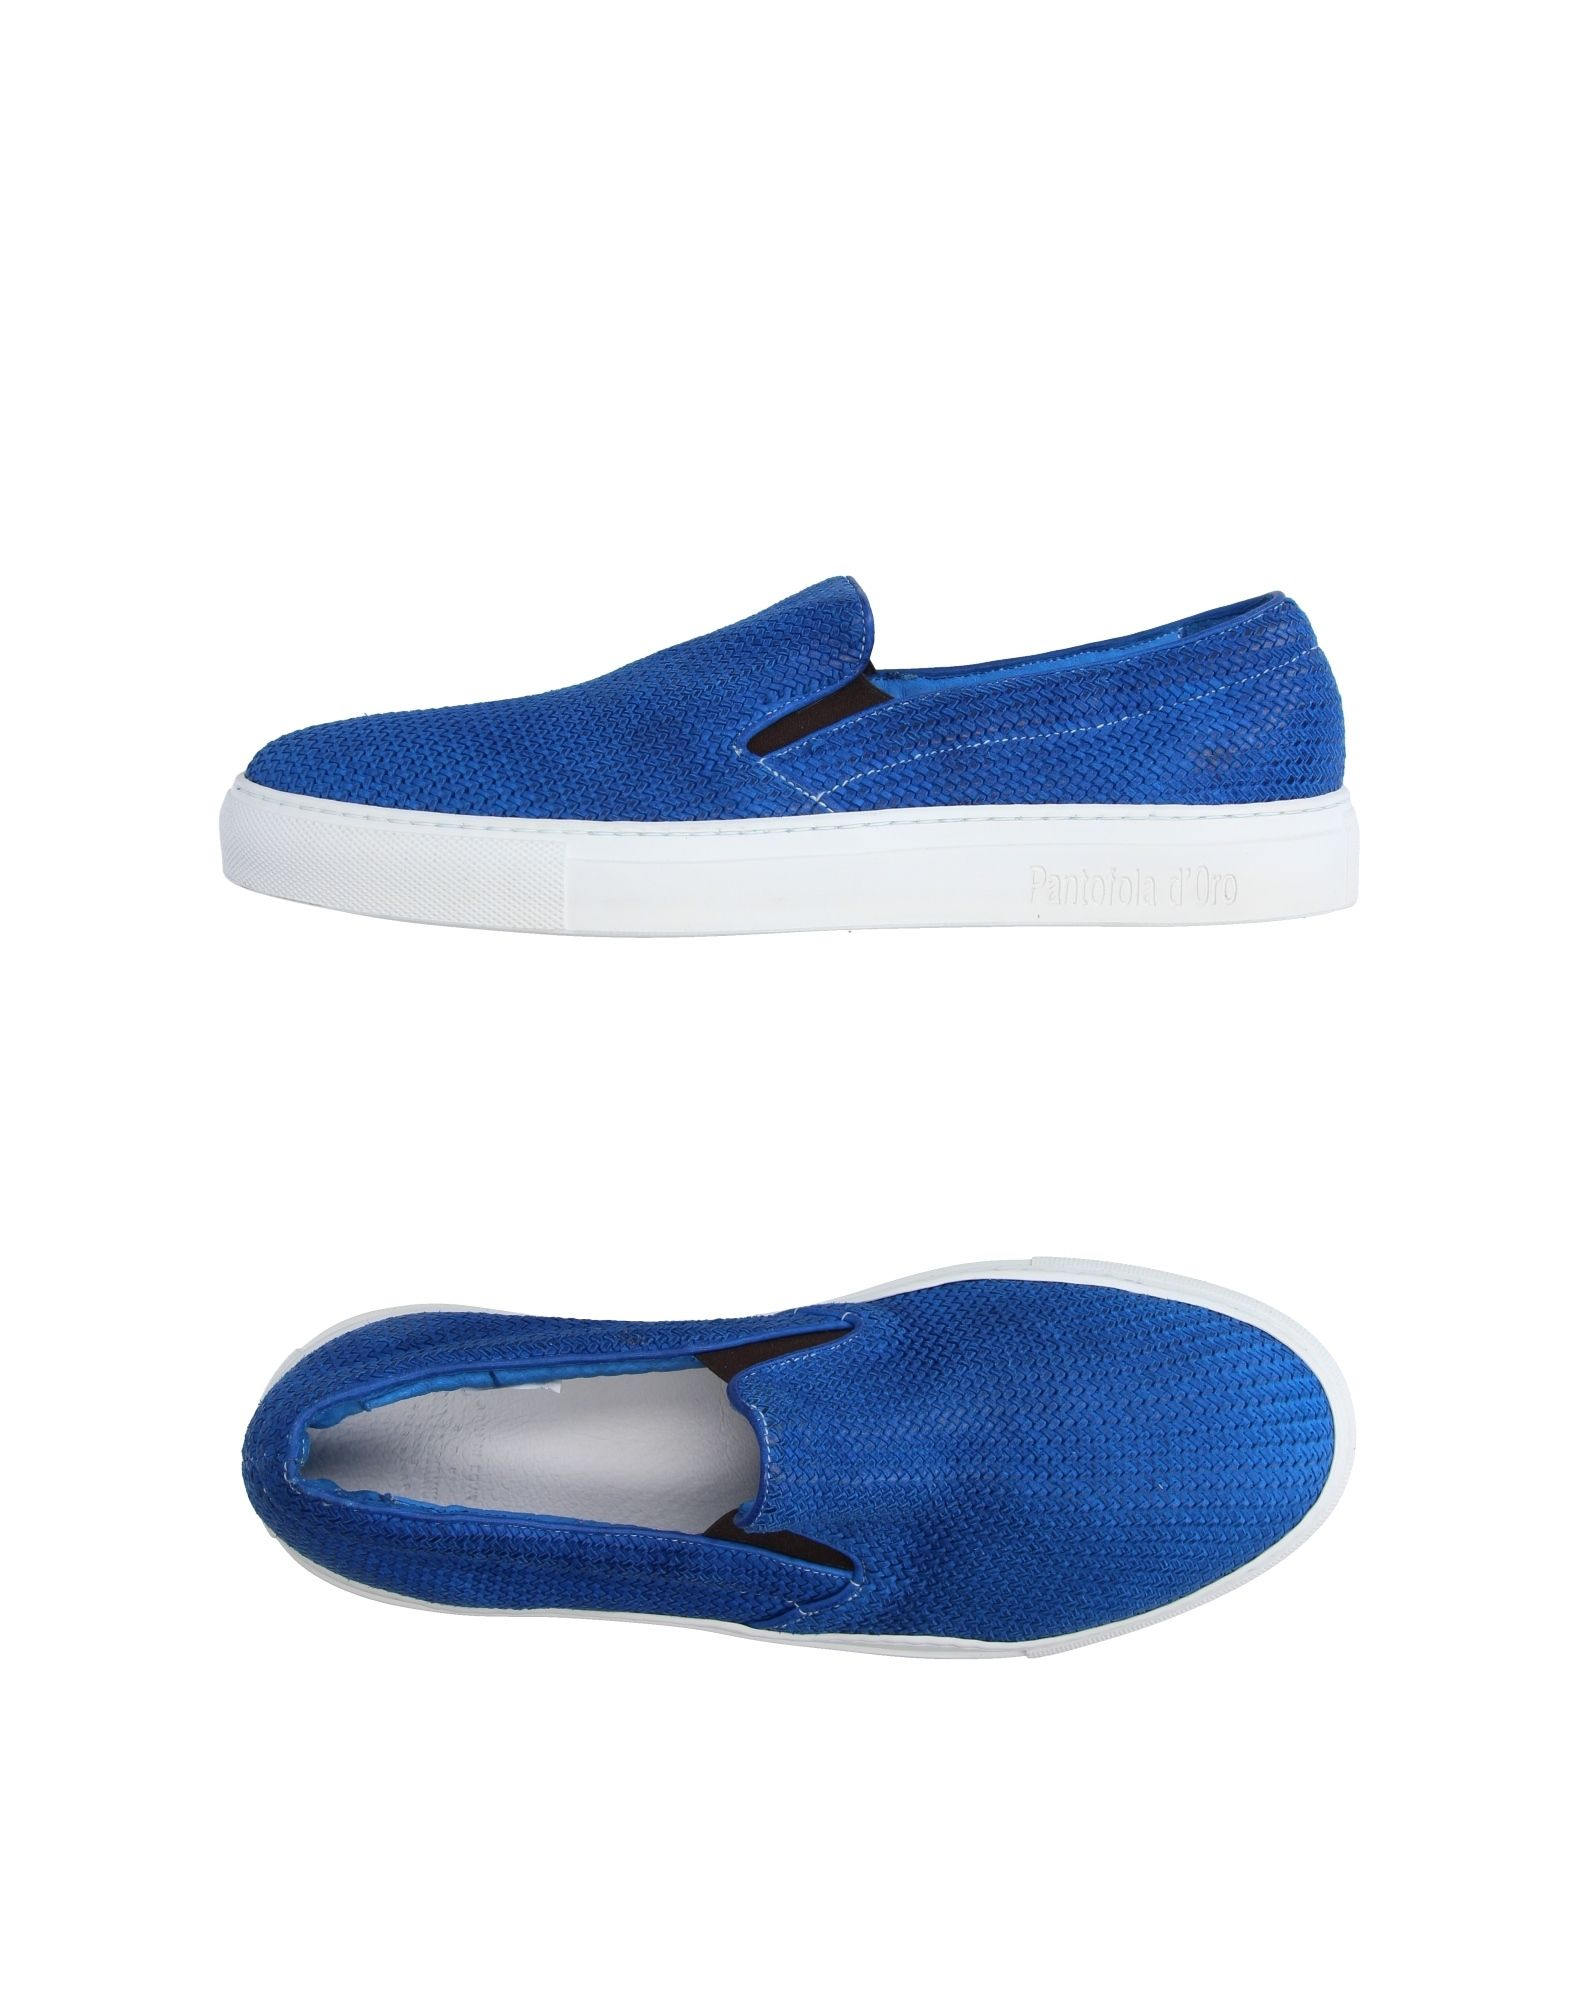 Sneakers Athletic Buy Best From Fashion D Island Shoes Moccasine Slip On Lacoste Suede Blue Influencers Brick Portal